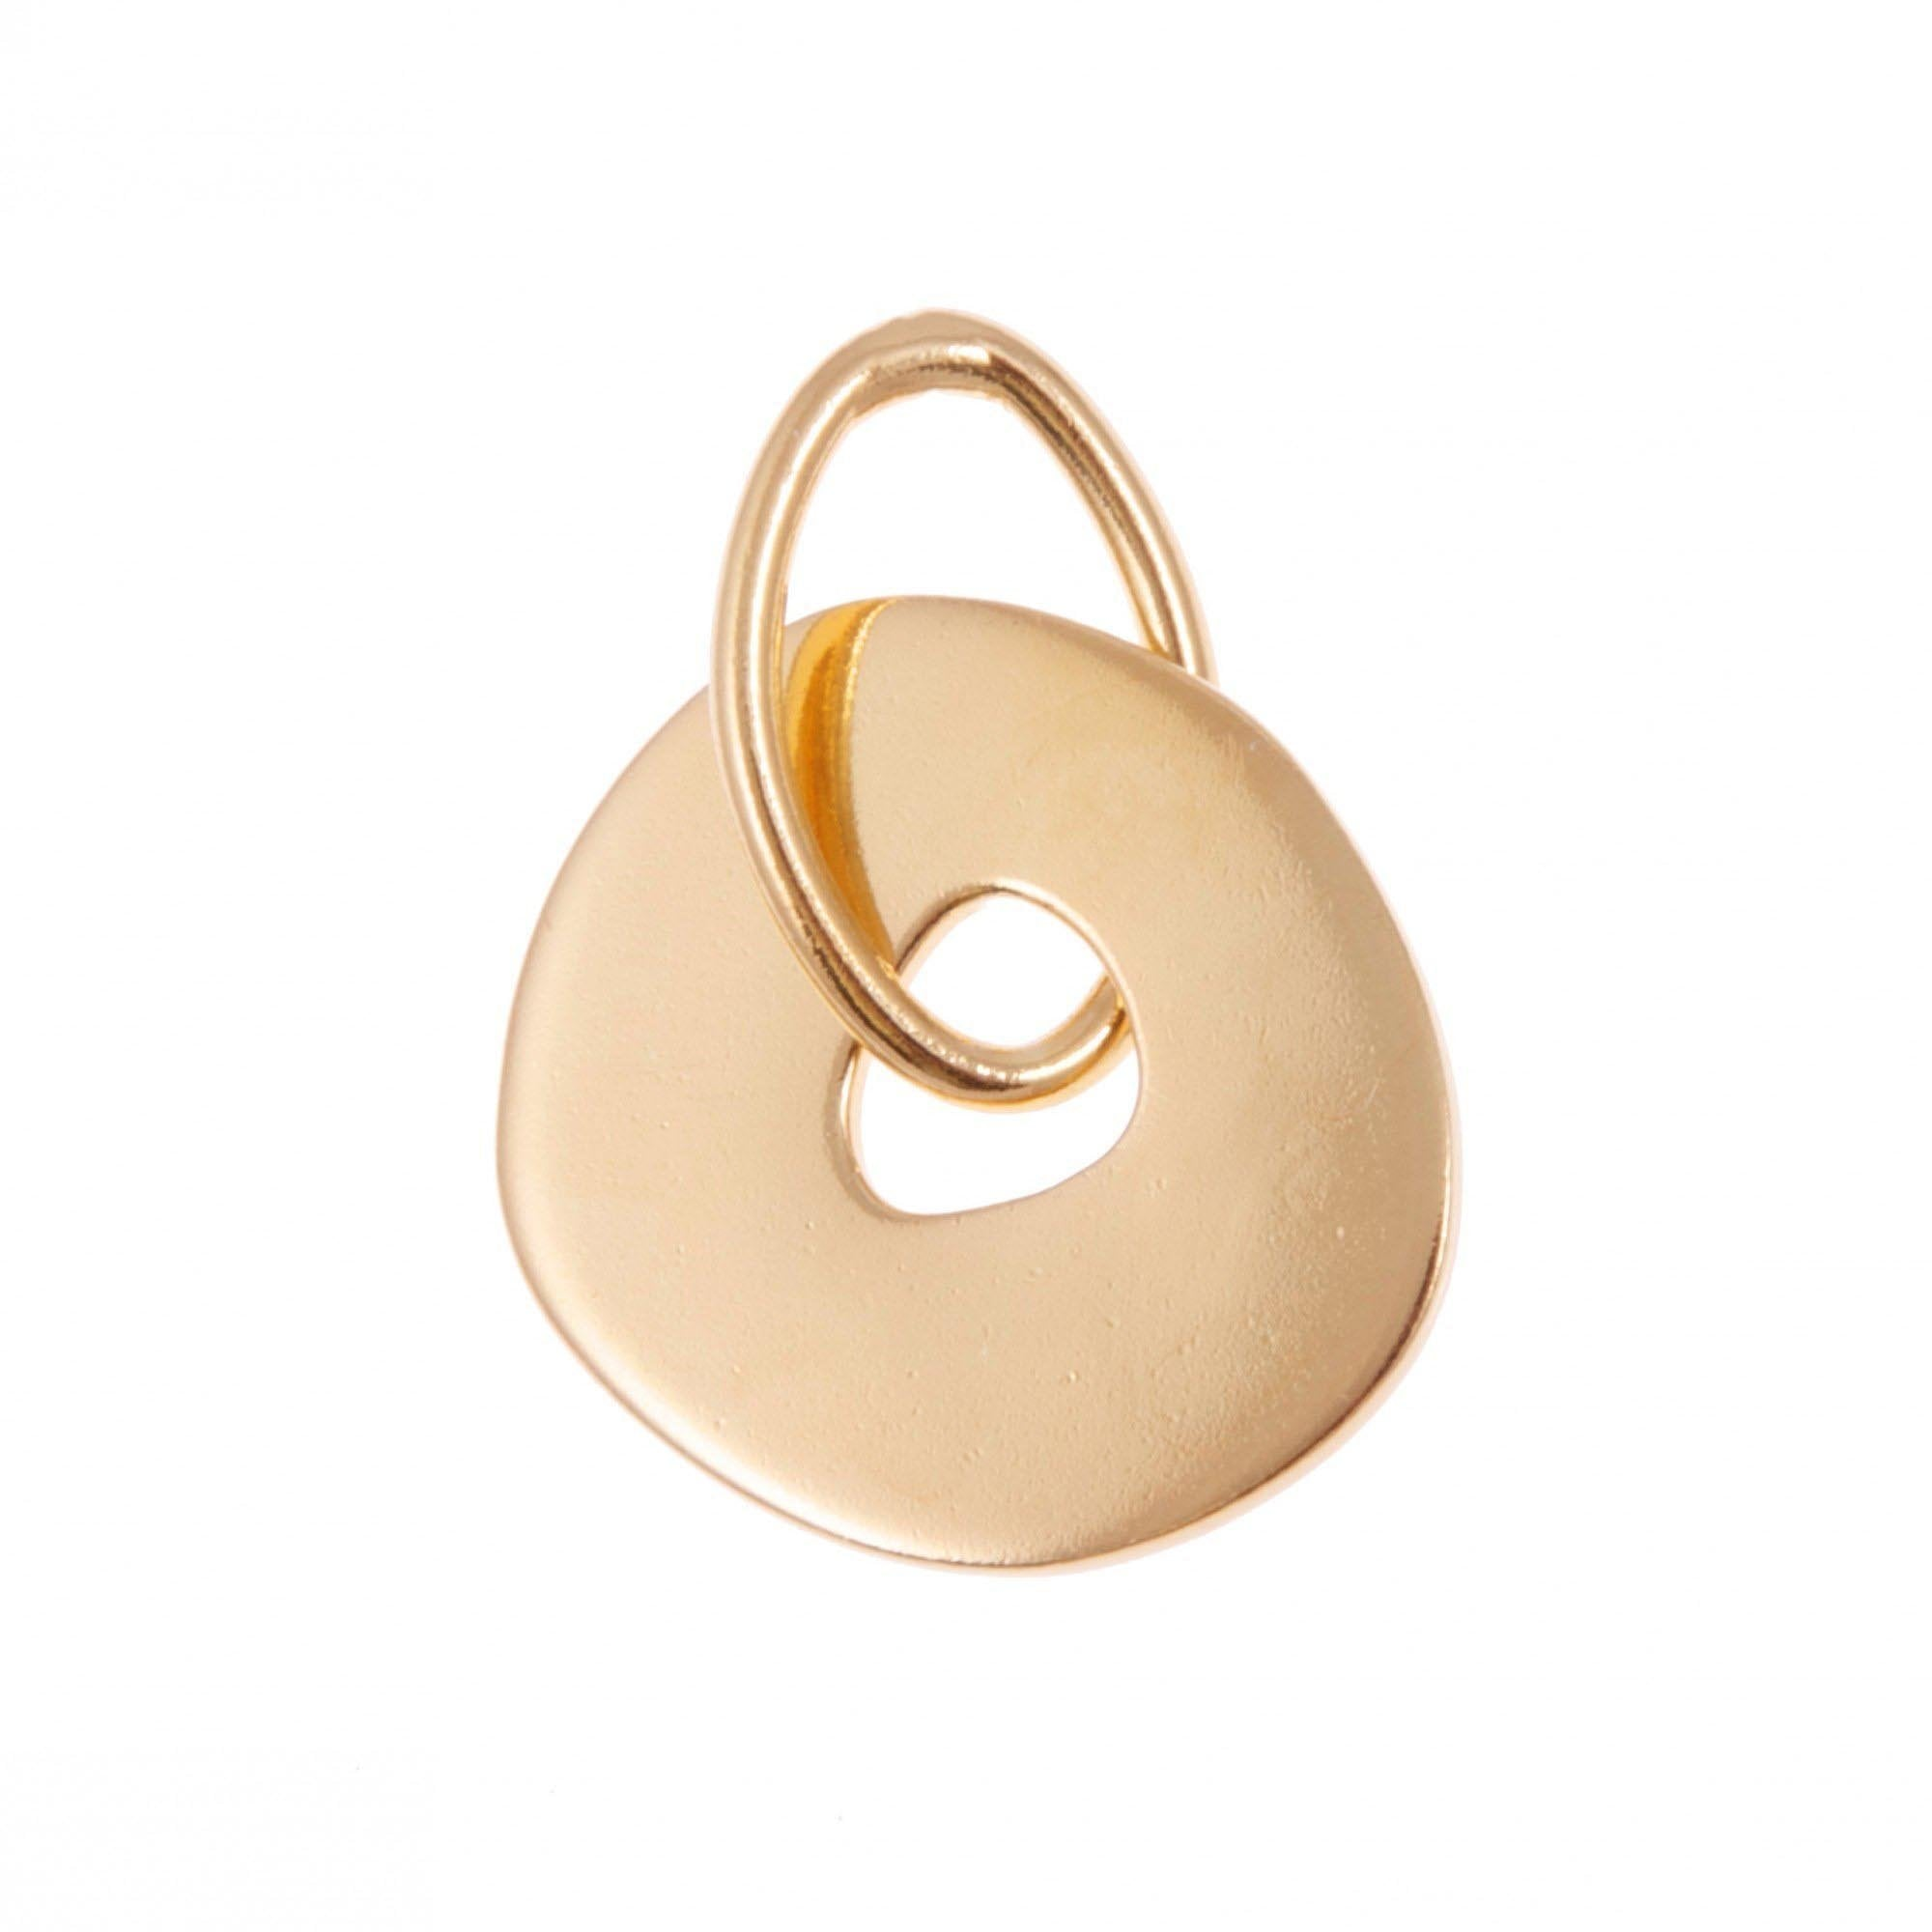 DONUT PENDANT BY KIRSTEN GOSS JEWELRY. Hand cut 'donut' shaped pendant designed to attach to the signature lifesaver necklaces. Beautifully handmade in 18kt gold vermeil.